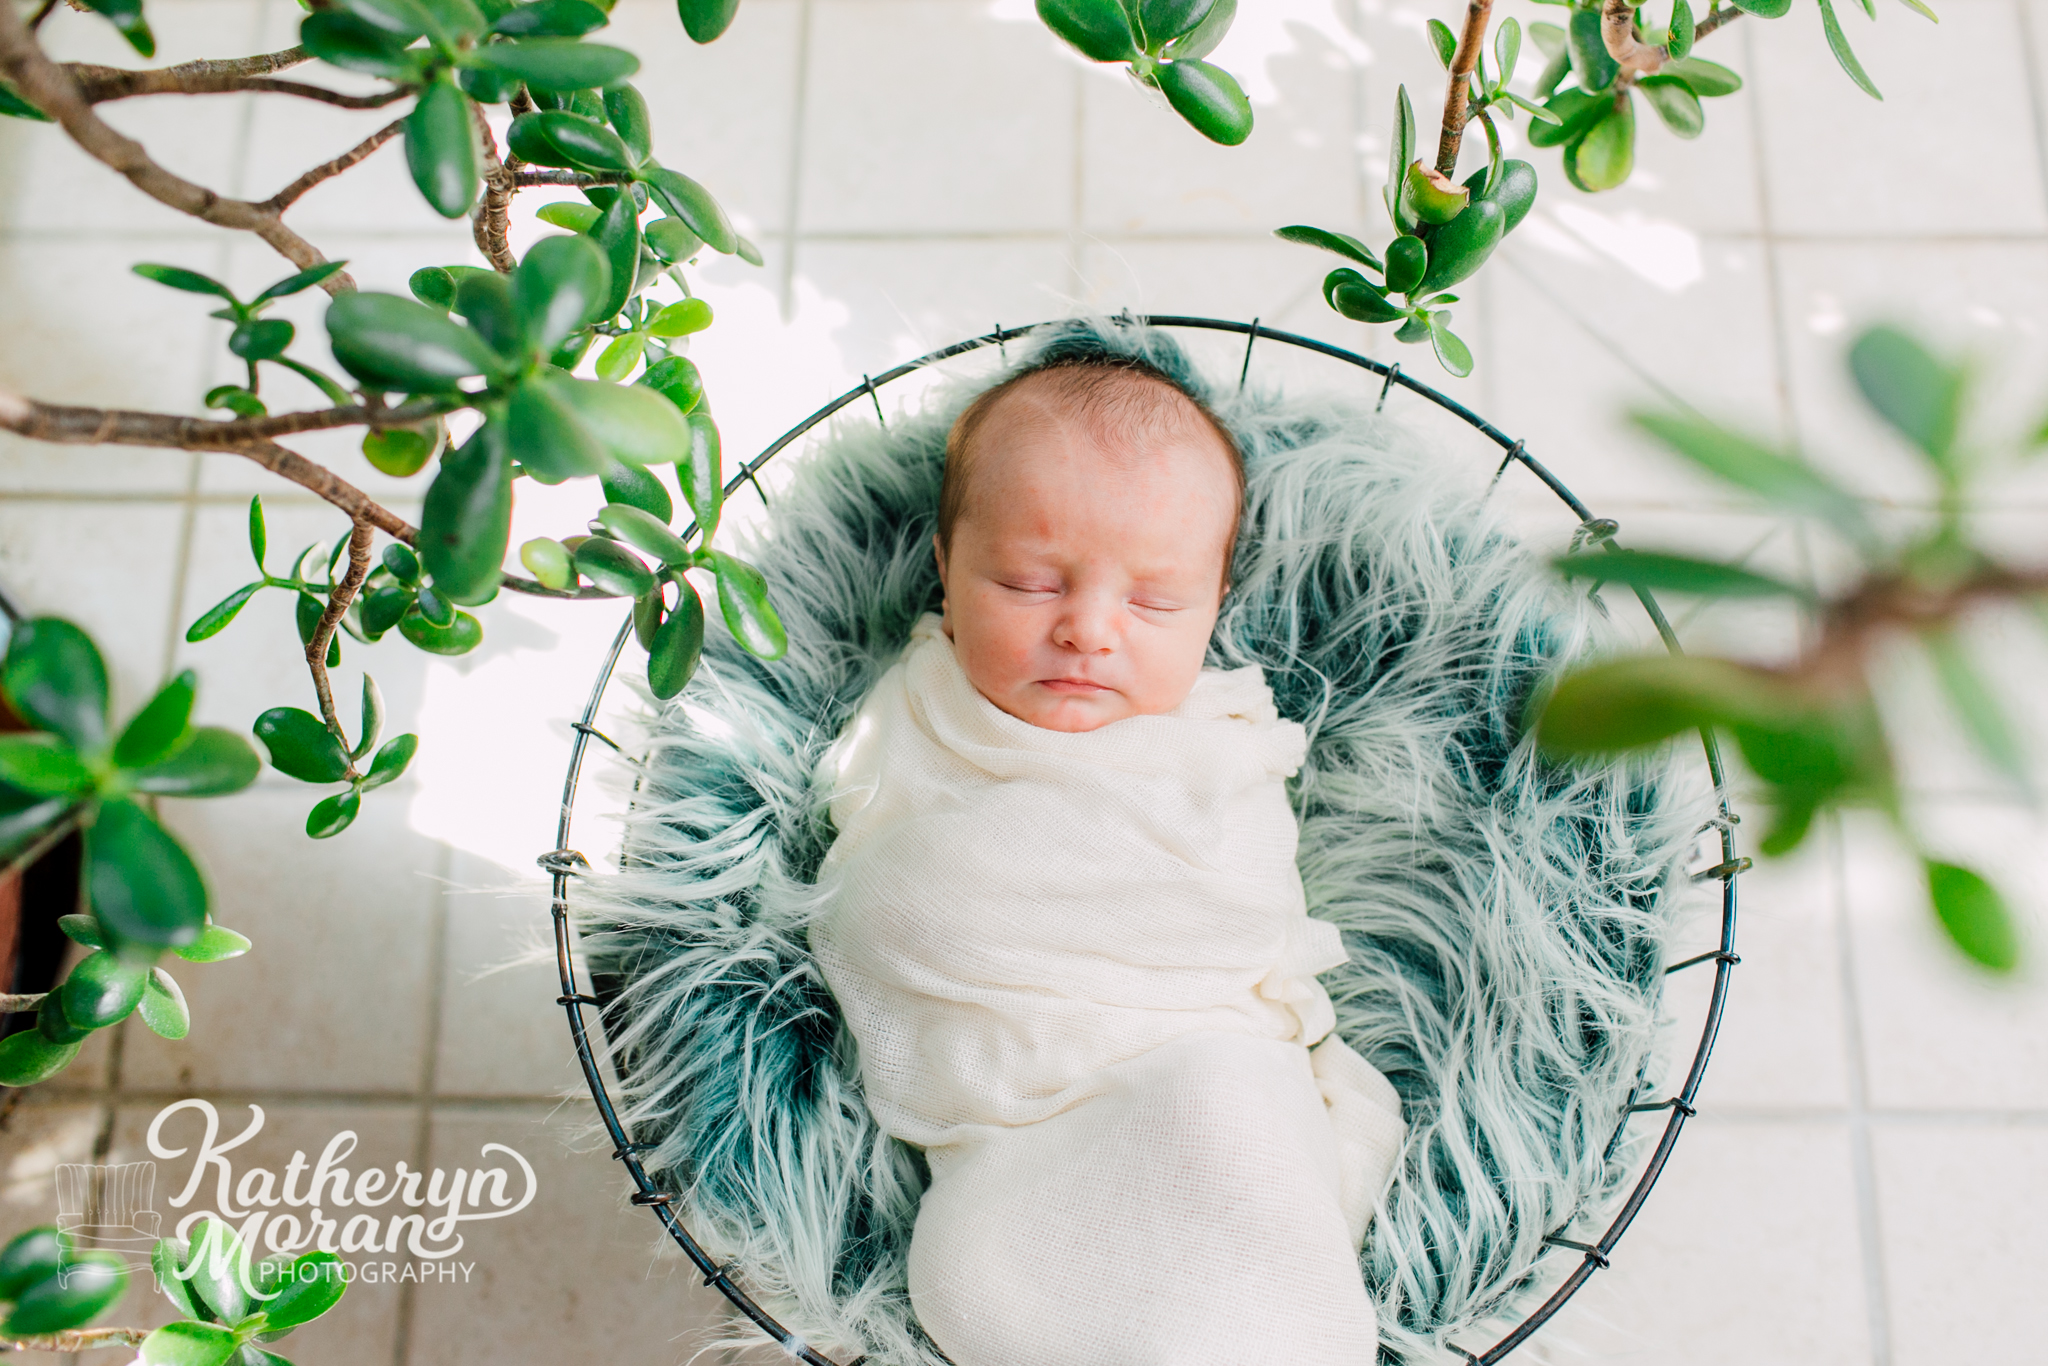 Bellingham Newborn Lifestyle Photographer, Katheryn Moran, Baby Photographer, Bellingham Photographer